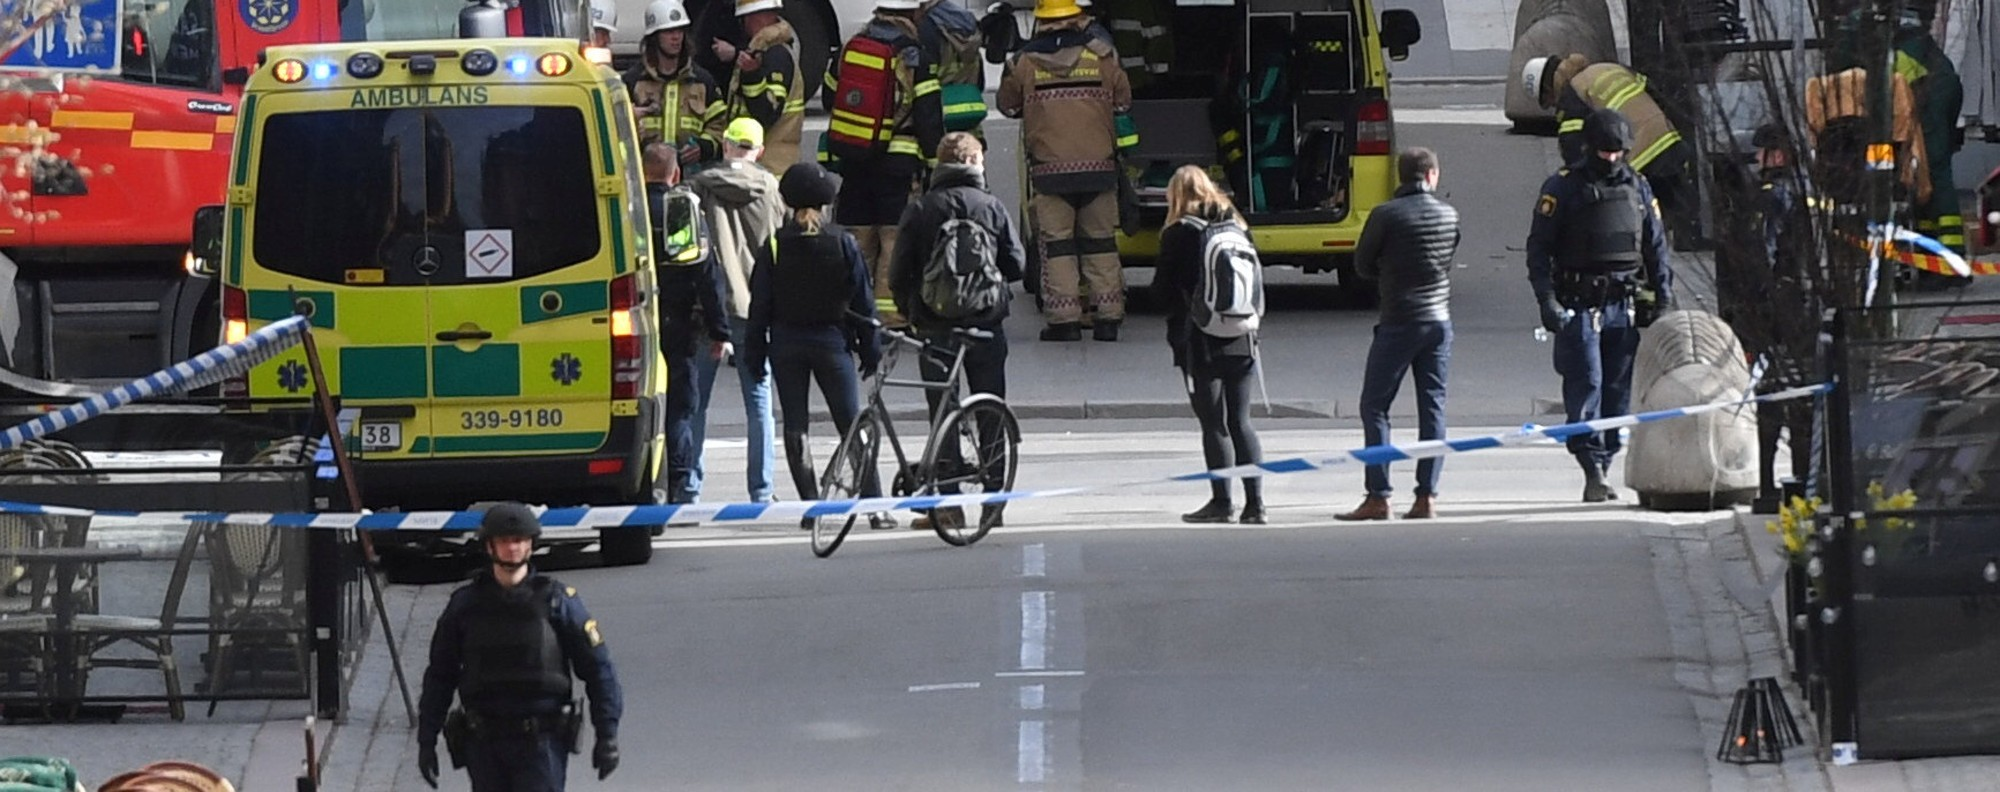 The site of a terror attack in Stockholm. Photo: Reuters